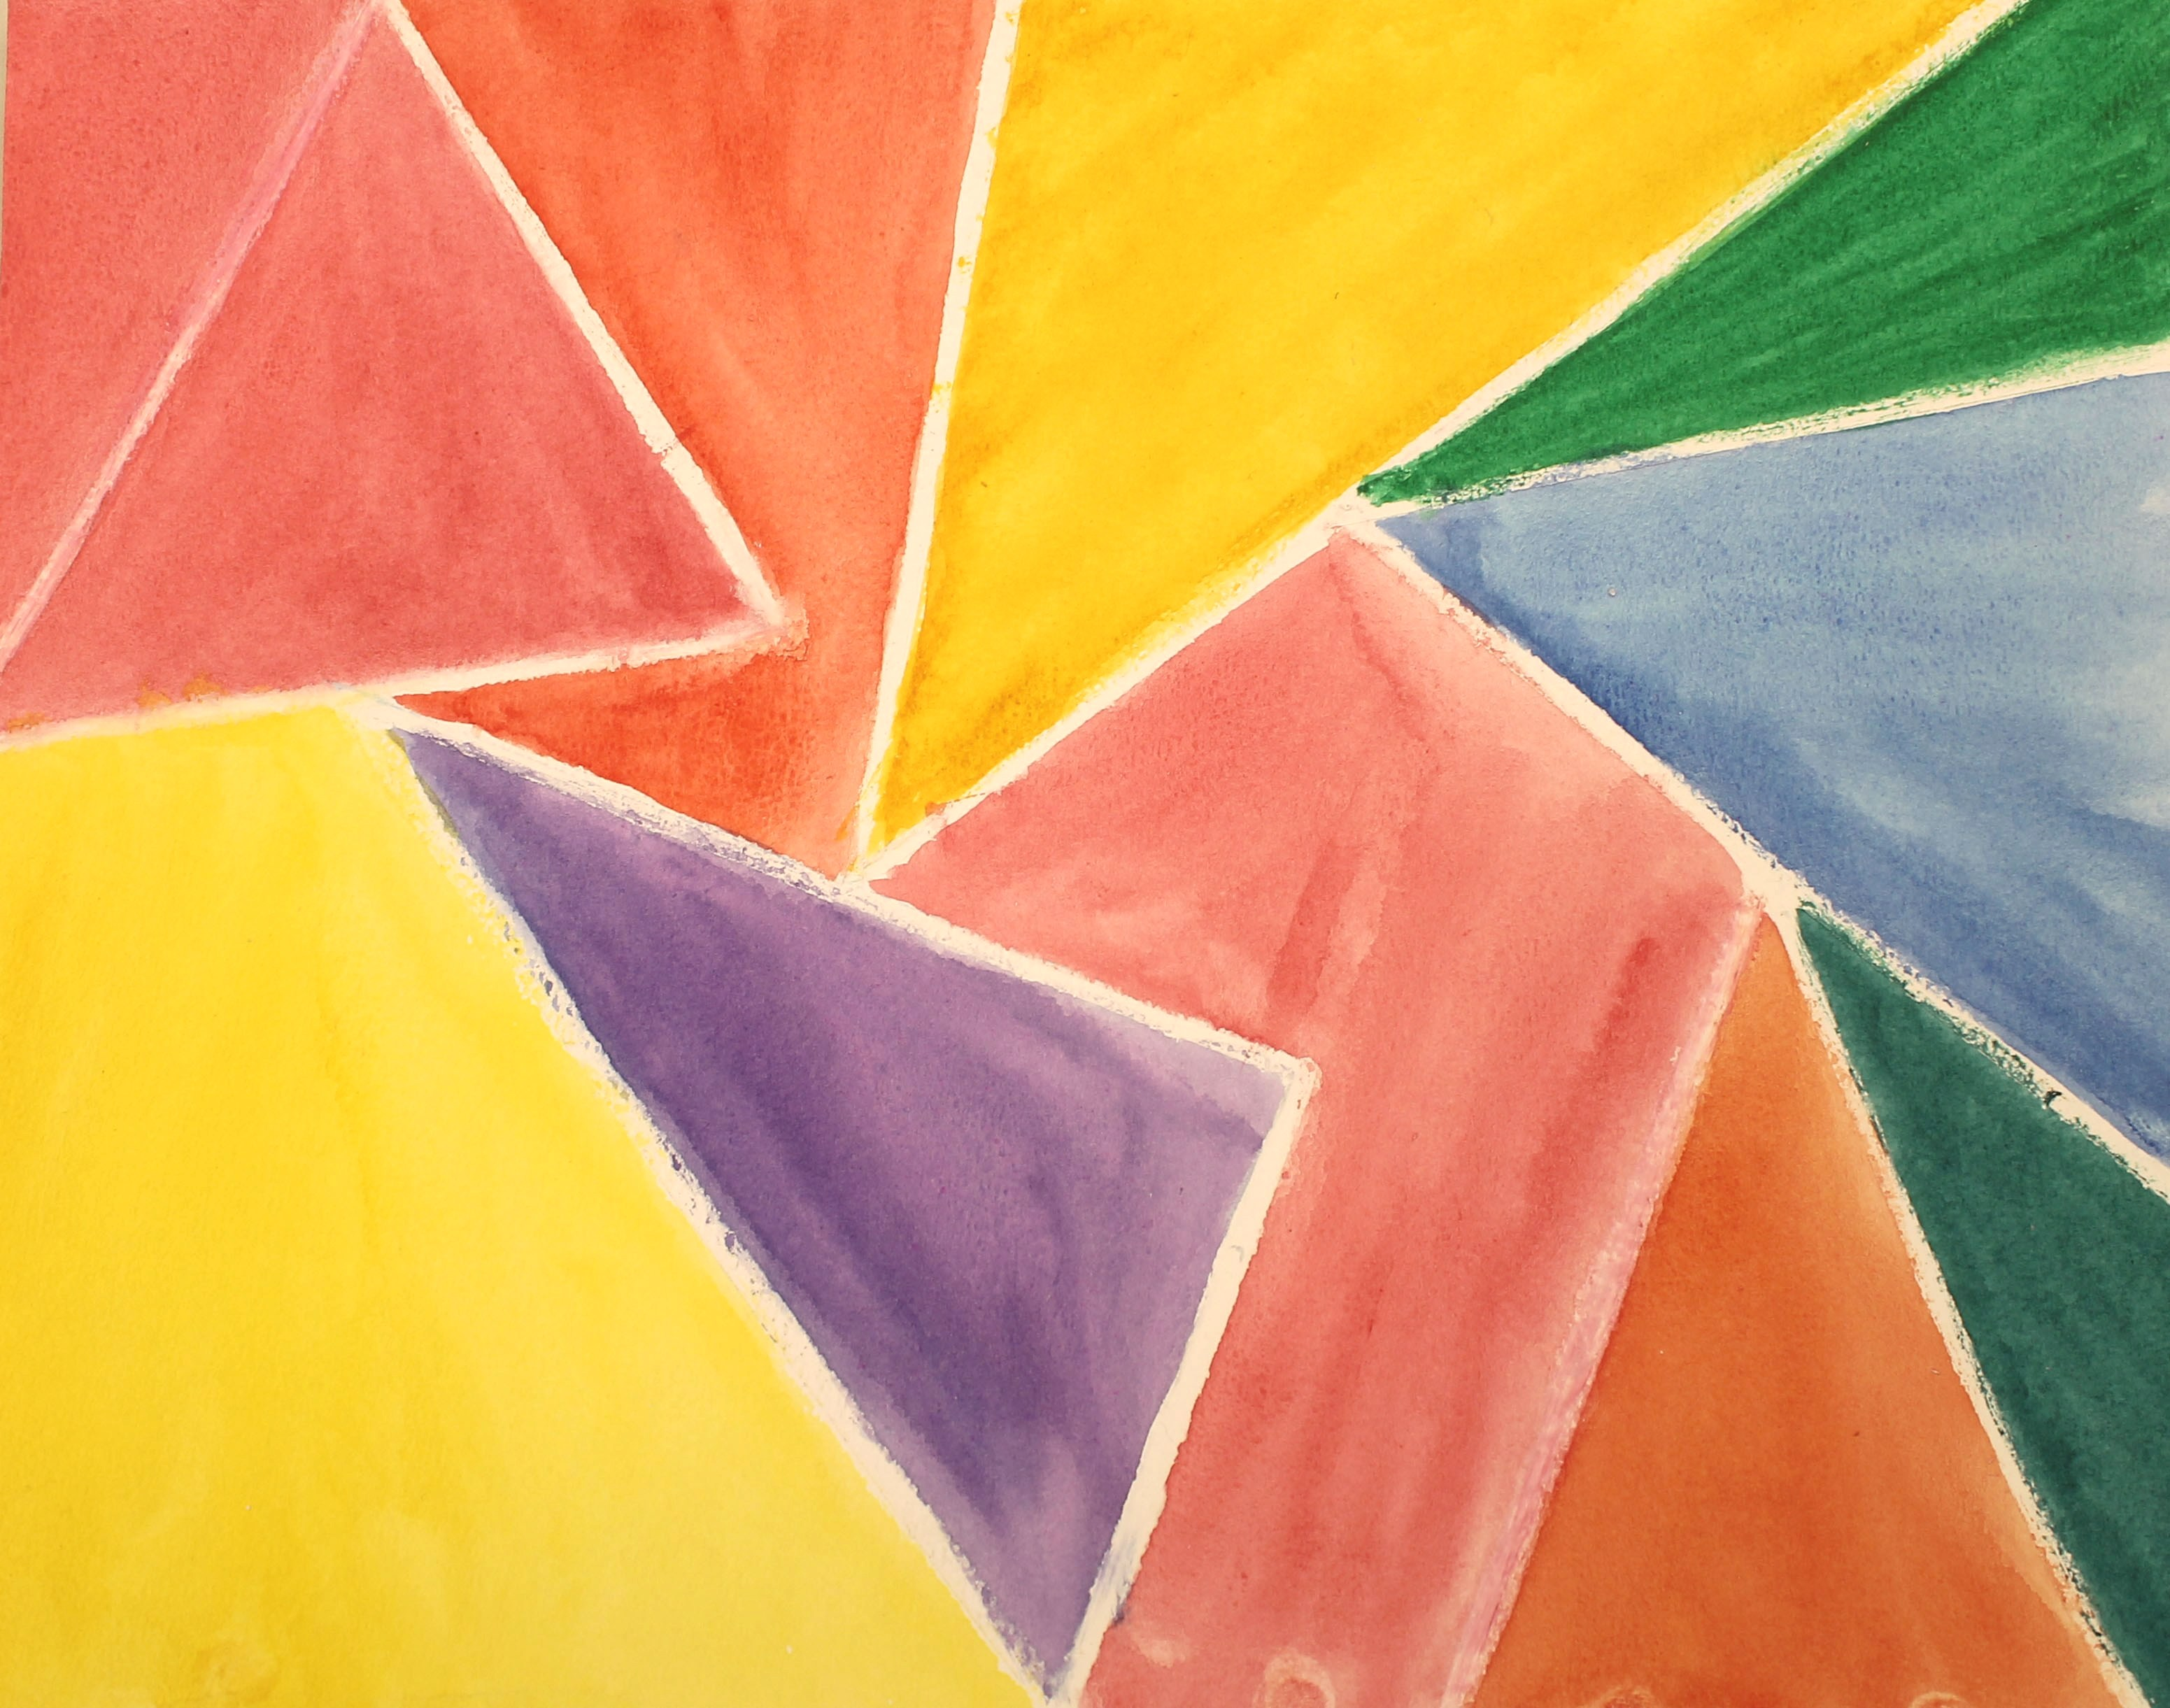 Elements of art color : Geometric organic shapes featured art element in fall courses